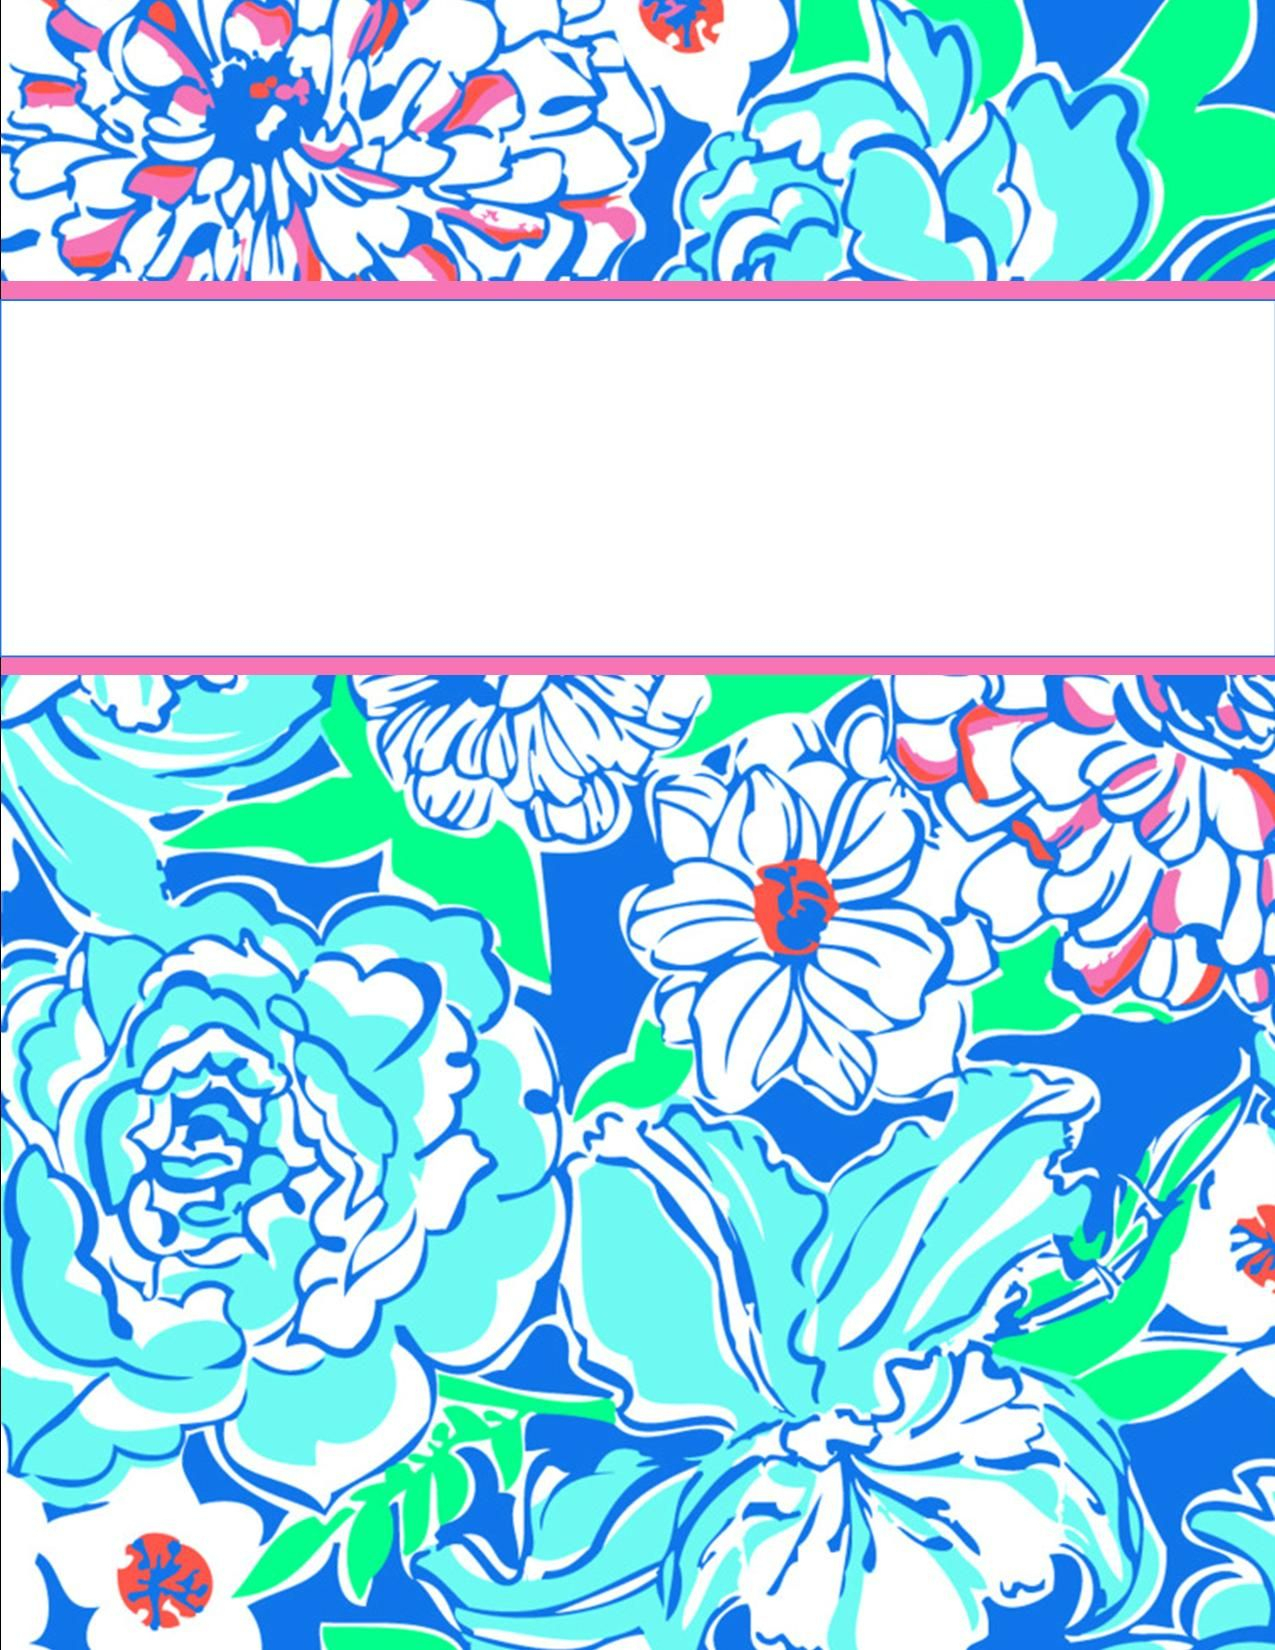 017 Free Printable Binder Cover Templates Template ~ Ulyssesroom - Free Printable Binder Cover Templates